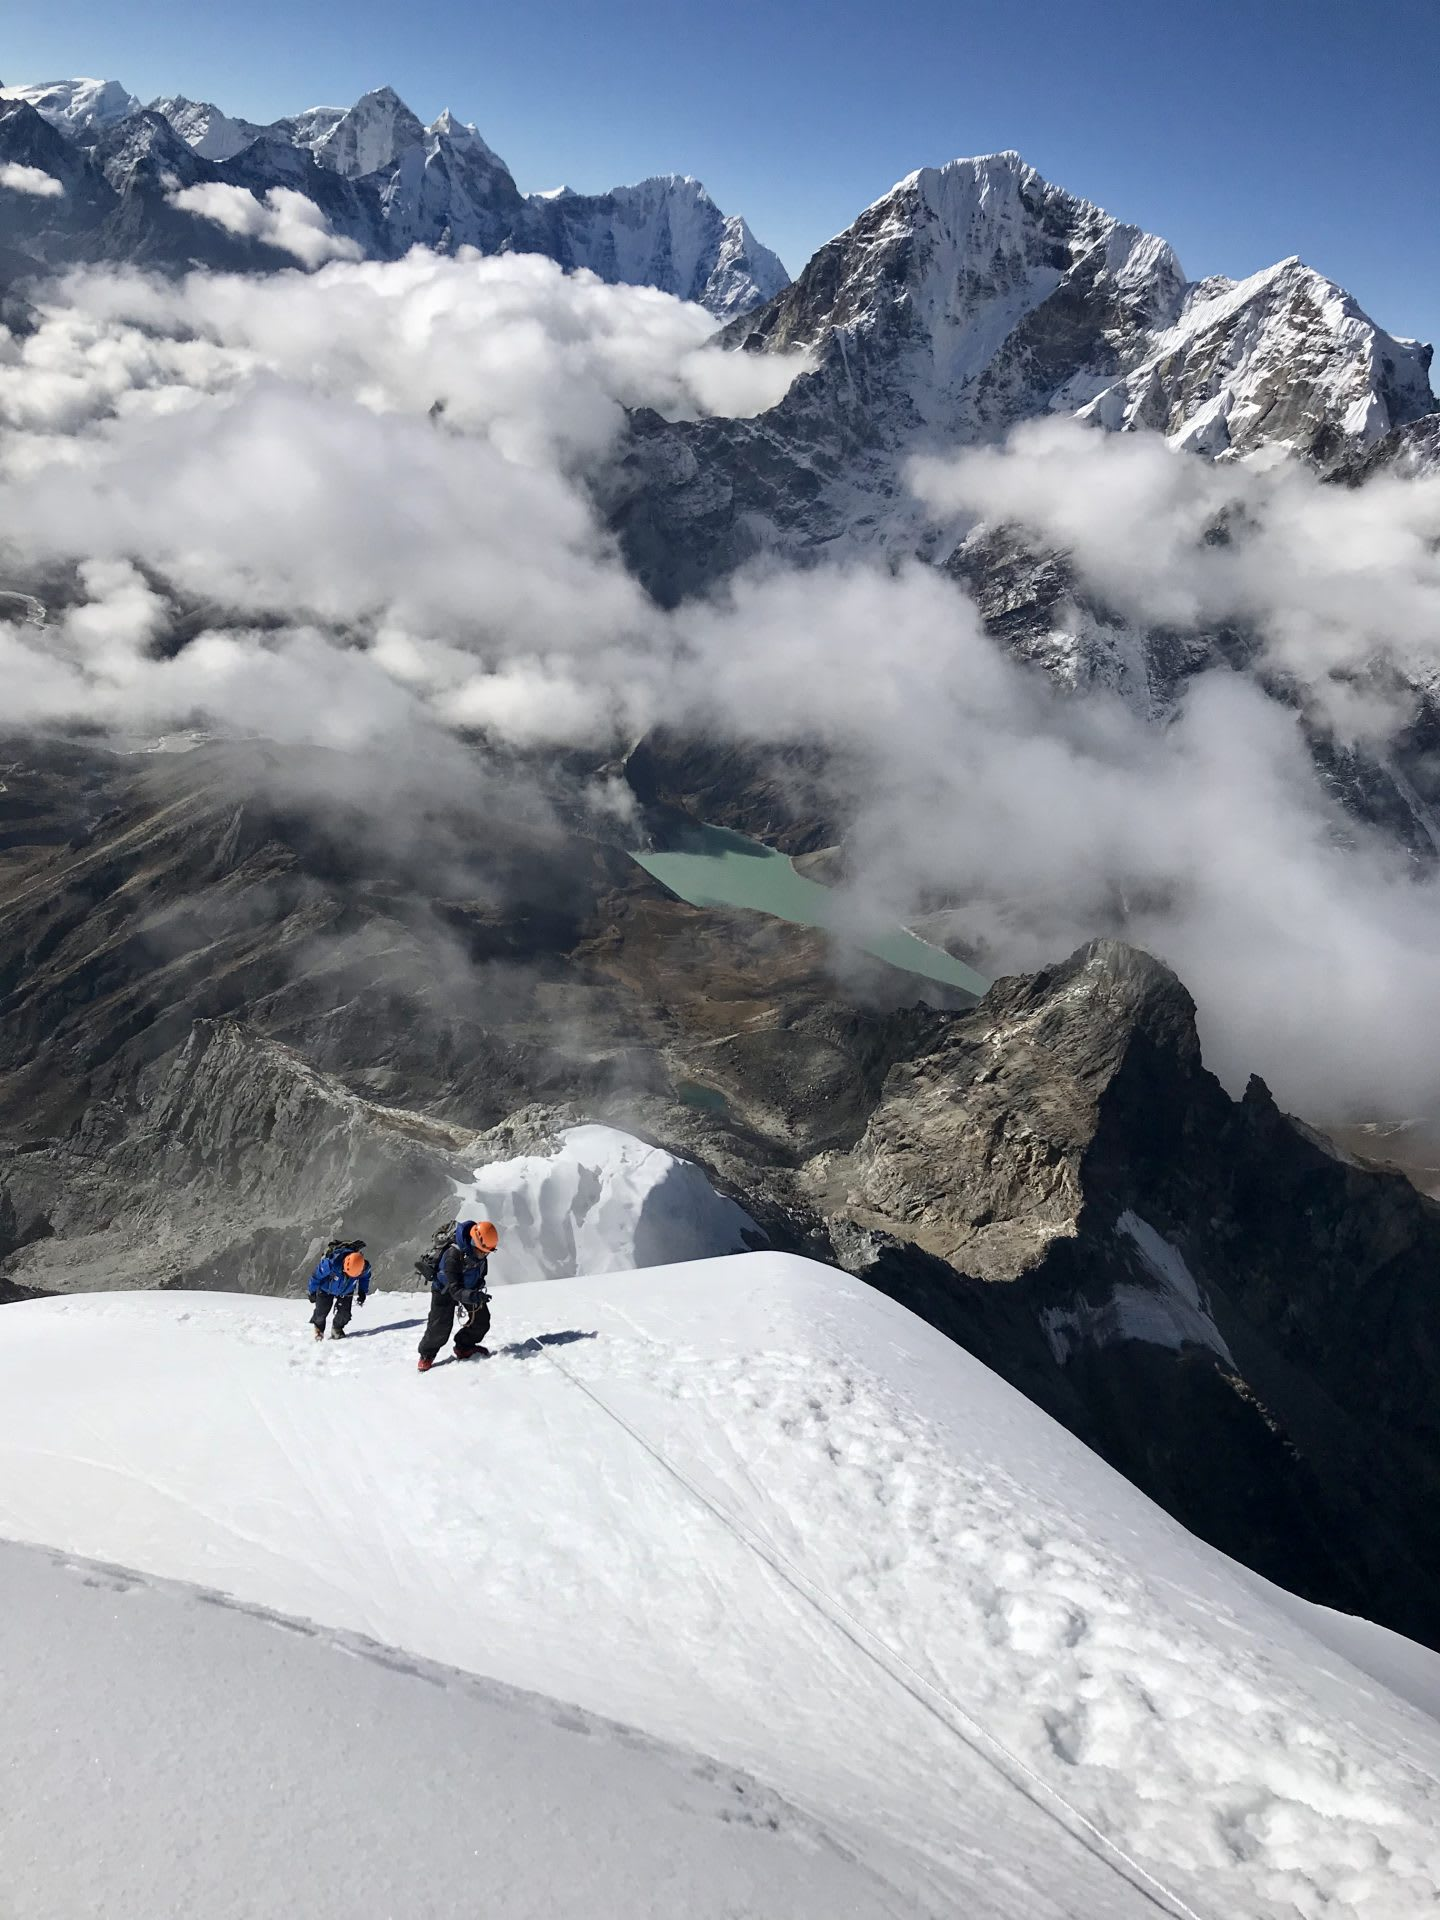 Marcel and his guide are walking over a snow field to climbing Everest.